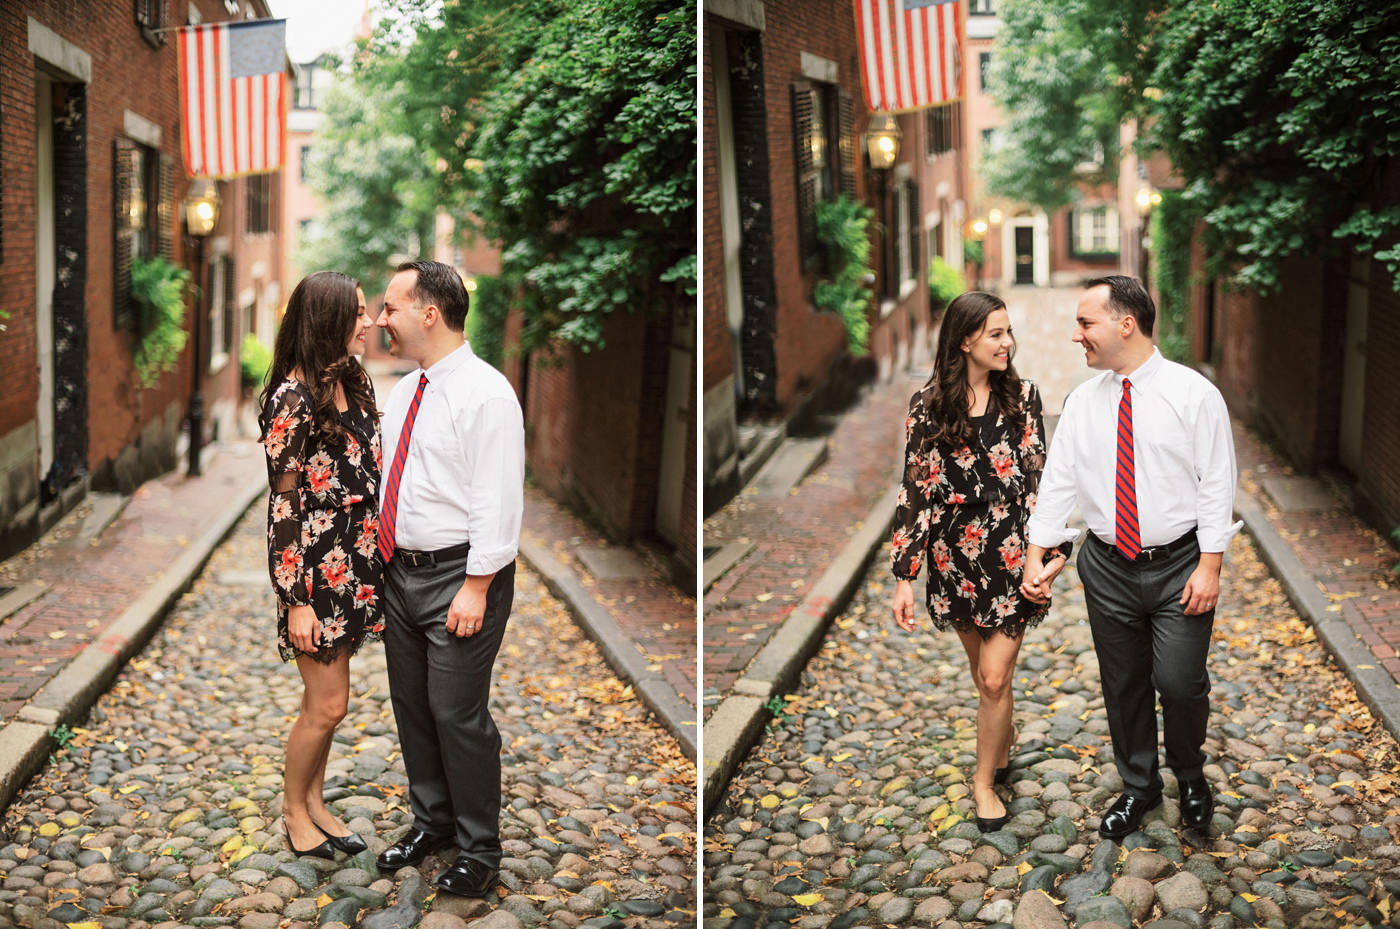 089-engagement-session-in-historic-beacon-hill-boston-by-top-fine-art-photographer.jpg